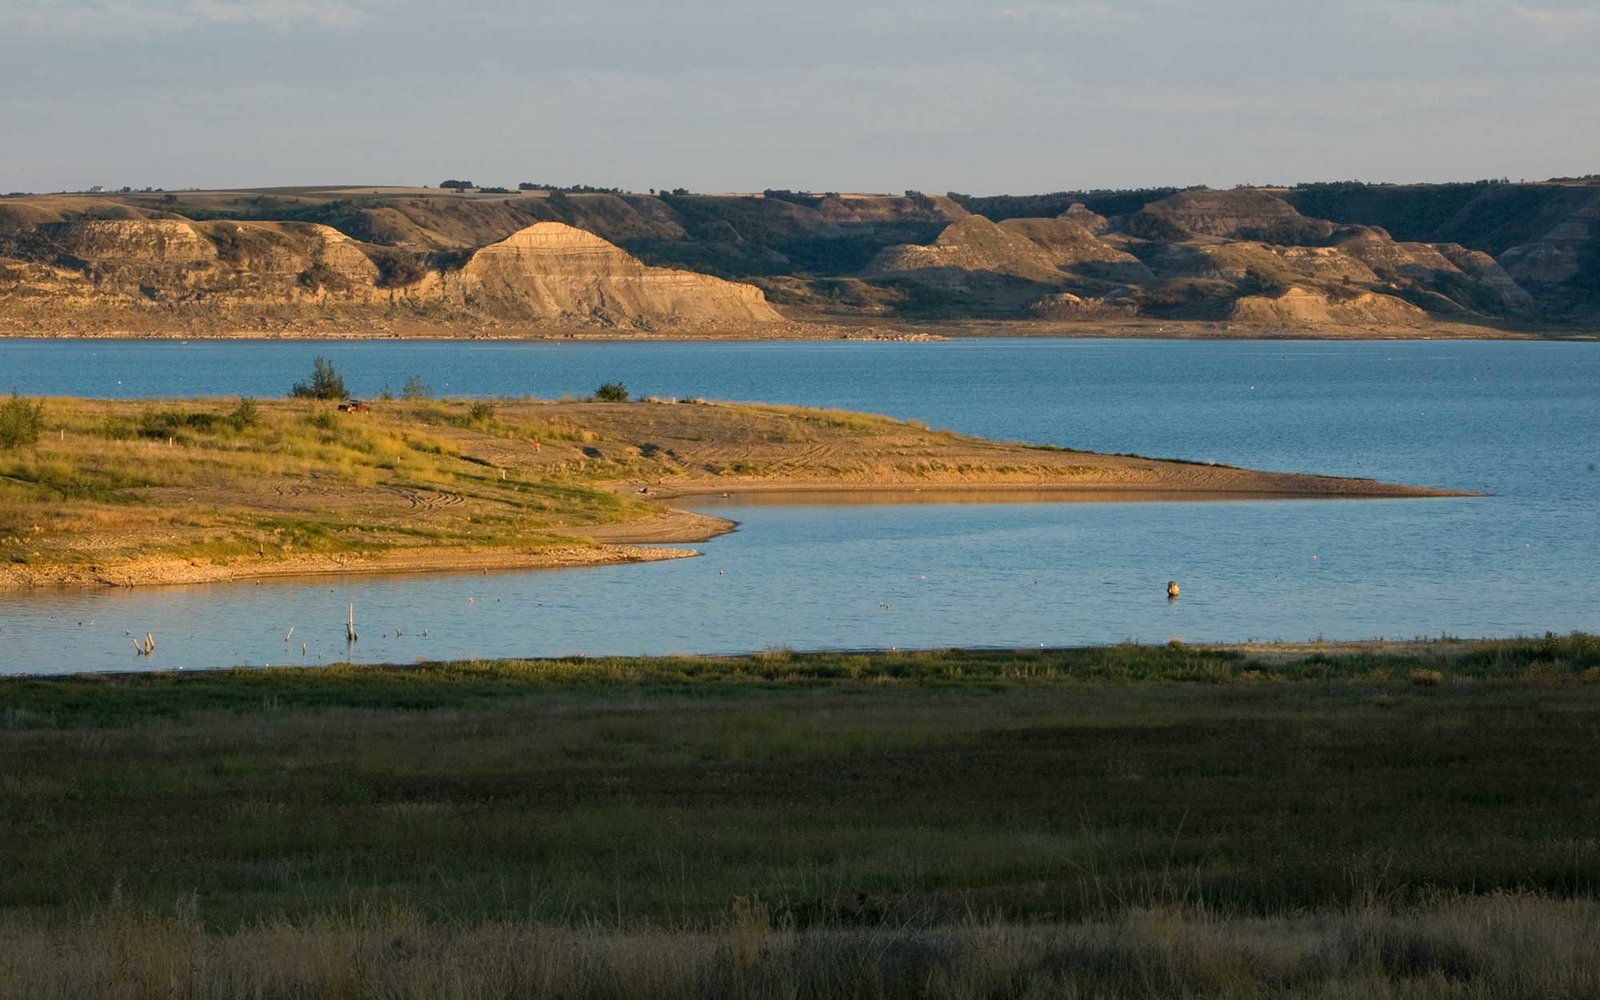 Missouri River, also known as Lake Sacajawea, with its high bluffs along the river banks flows through the homelands of the Mandan, Hidatsa and Arikara (Three Affiliated Tribes) on the Fort Berthold Indian Reservation